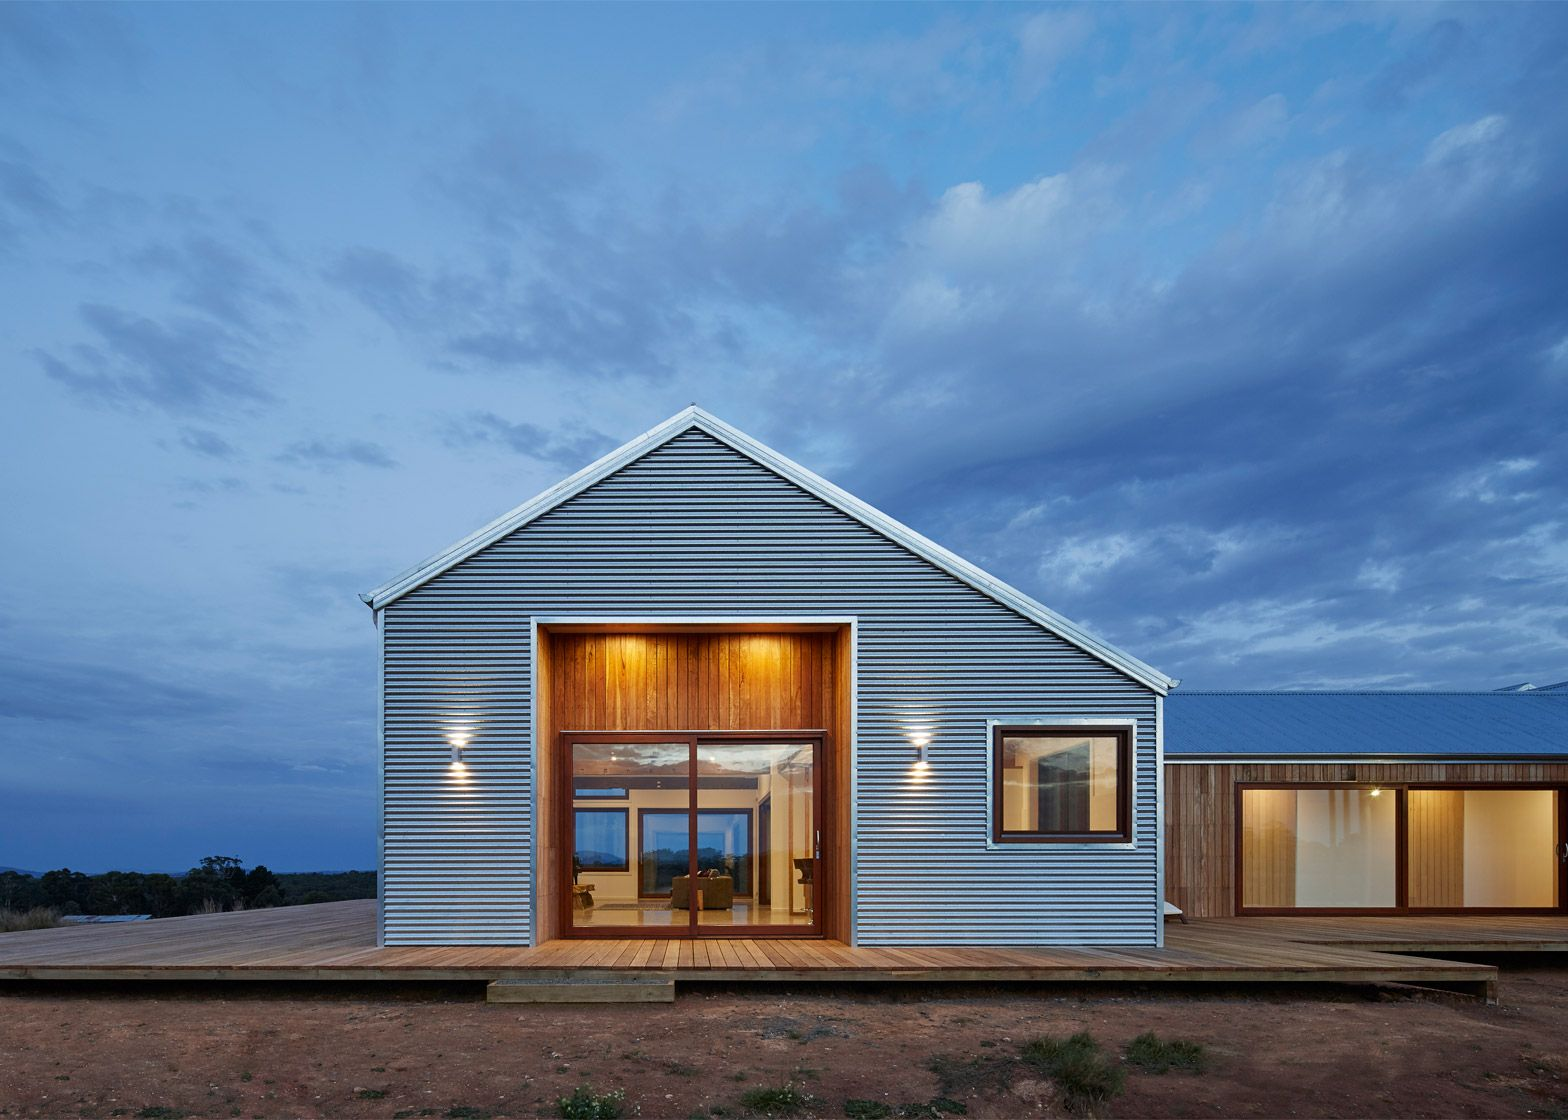 This shedinspired house in Australia features a lowmaintenance